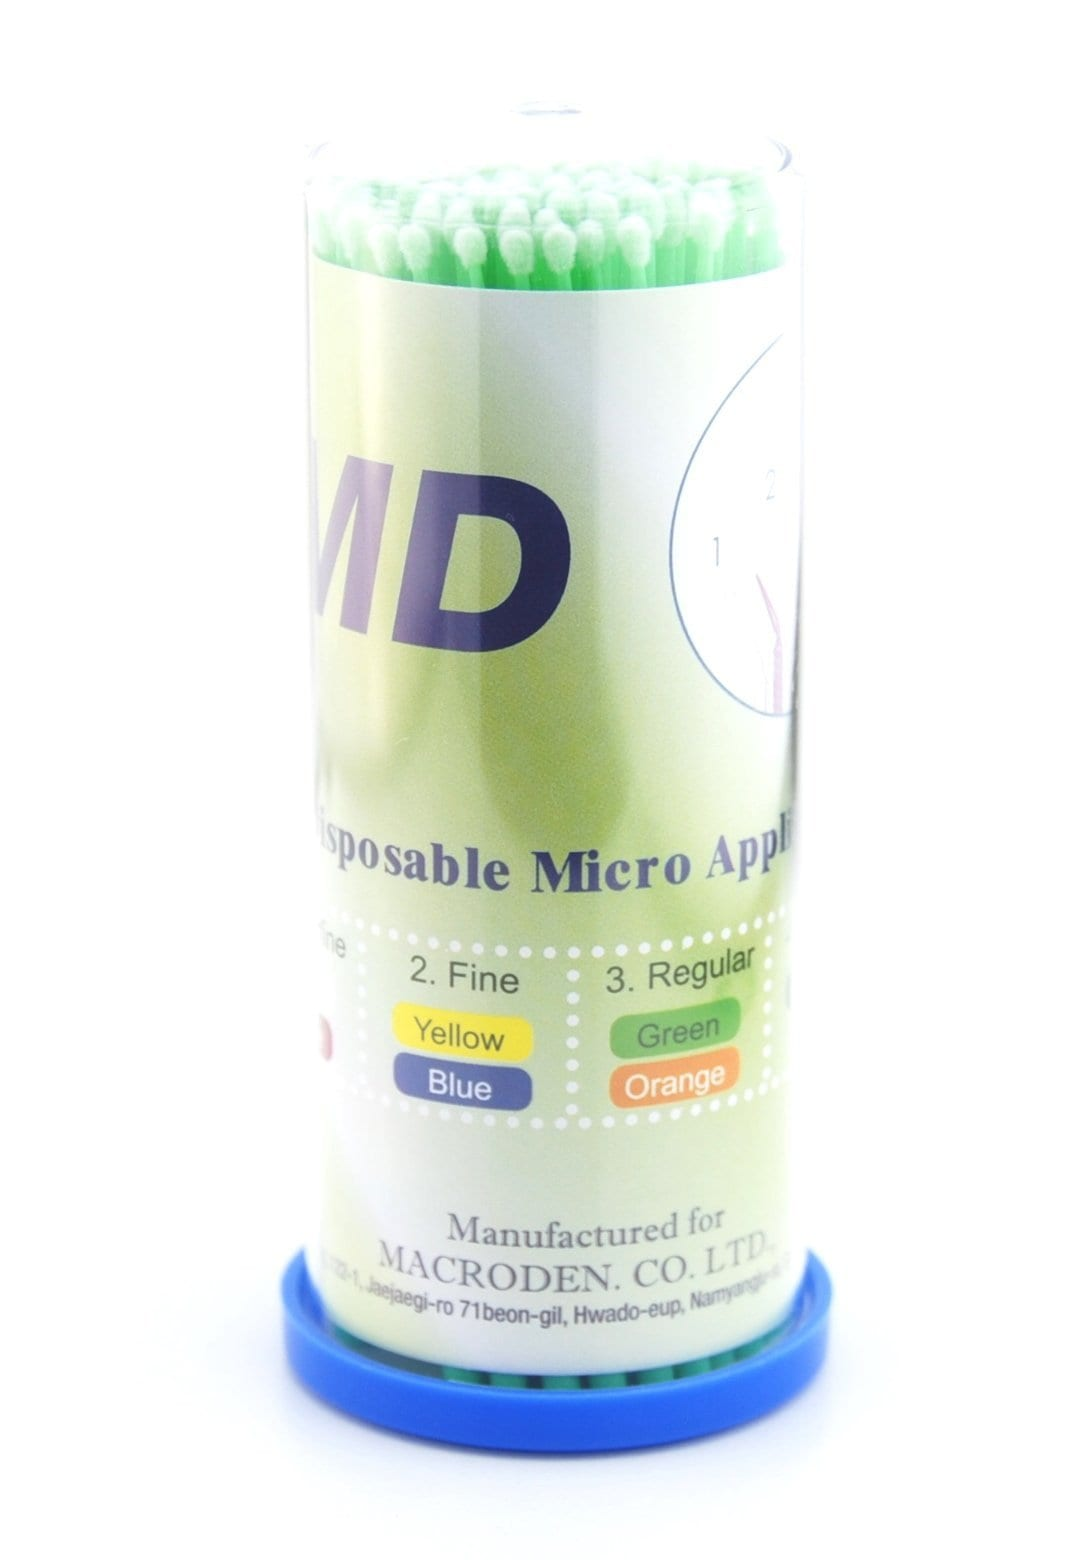 MD Disposable Micro Applicator - Green